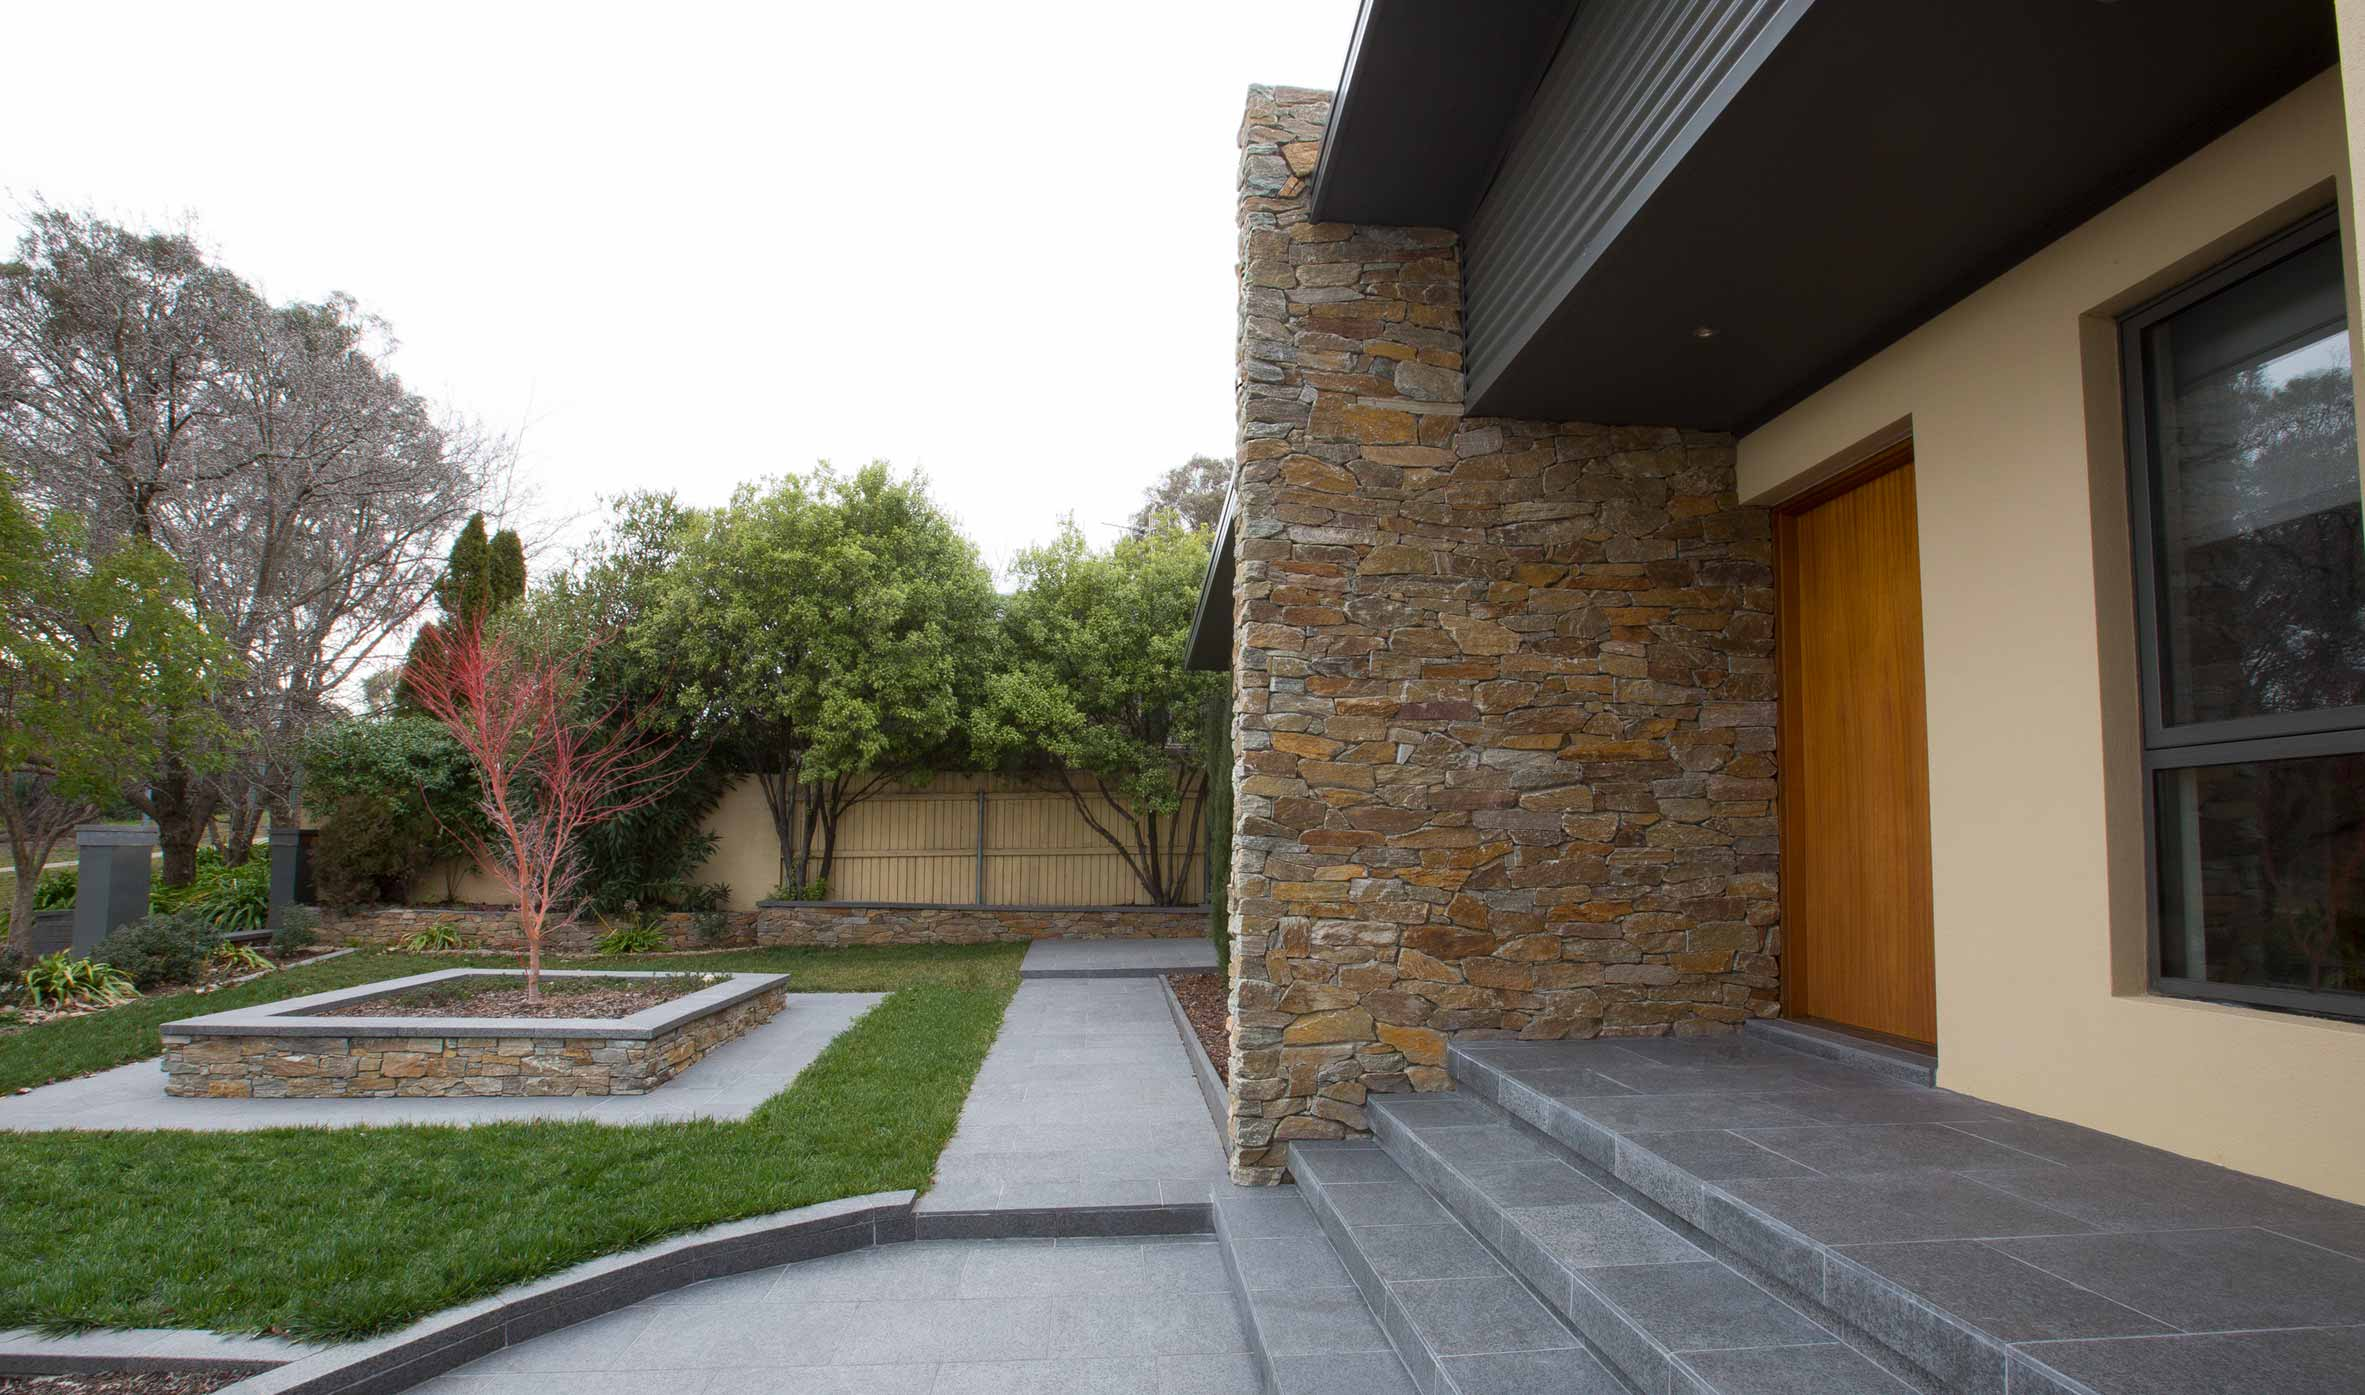 Wall-Cladding-and-Stacked-Stones Thumbnails wall-cladding-and-stacked-stones-30